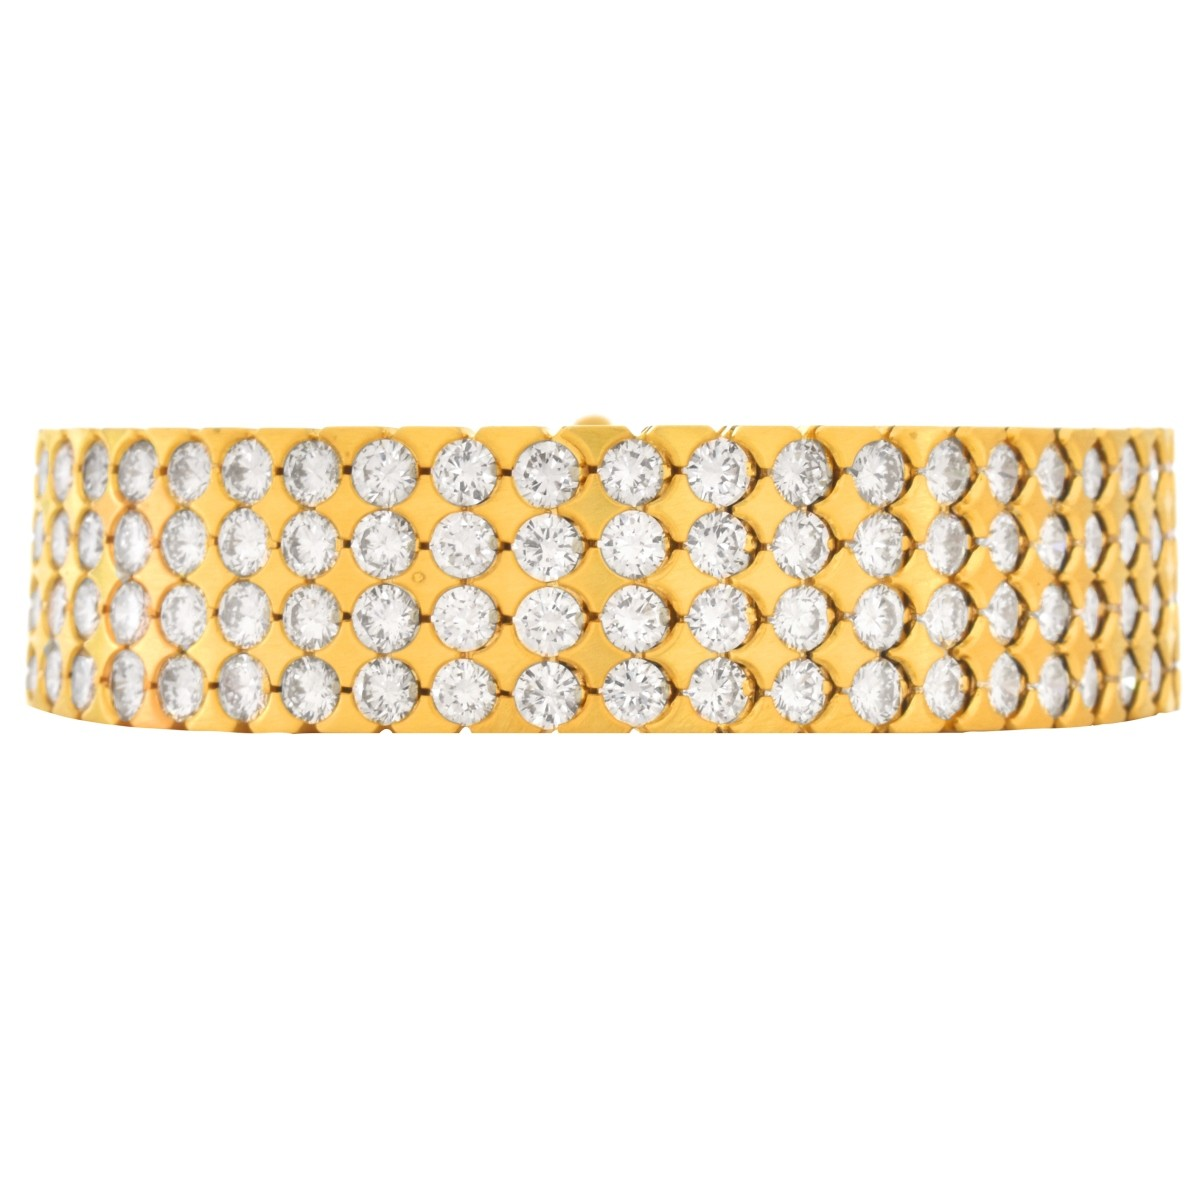 22.0ct TW Diamond and 18K Gold Bracelet